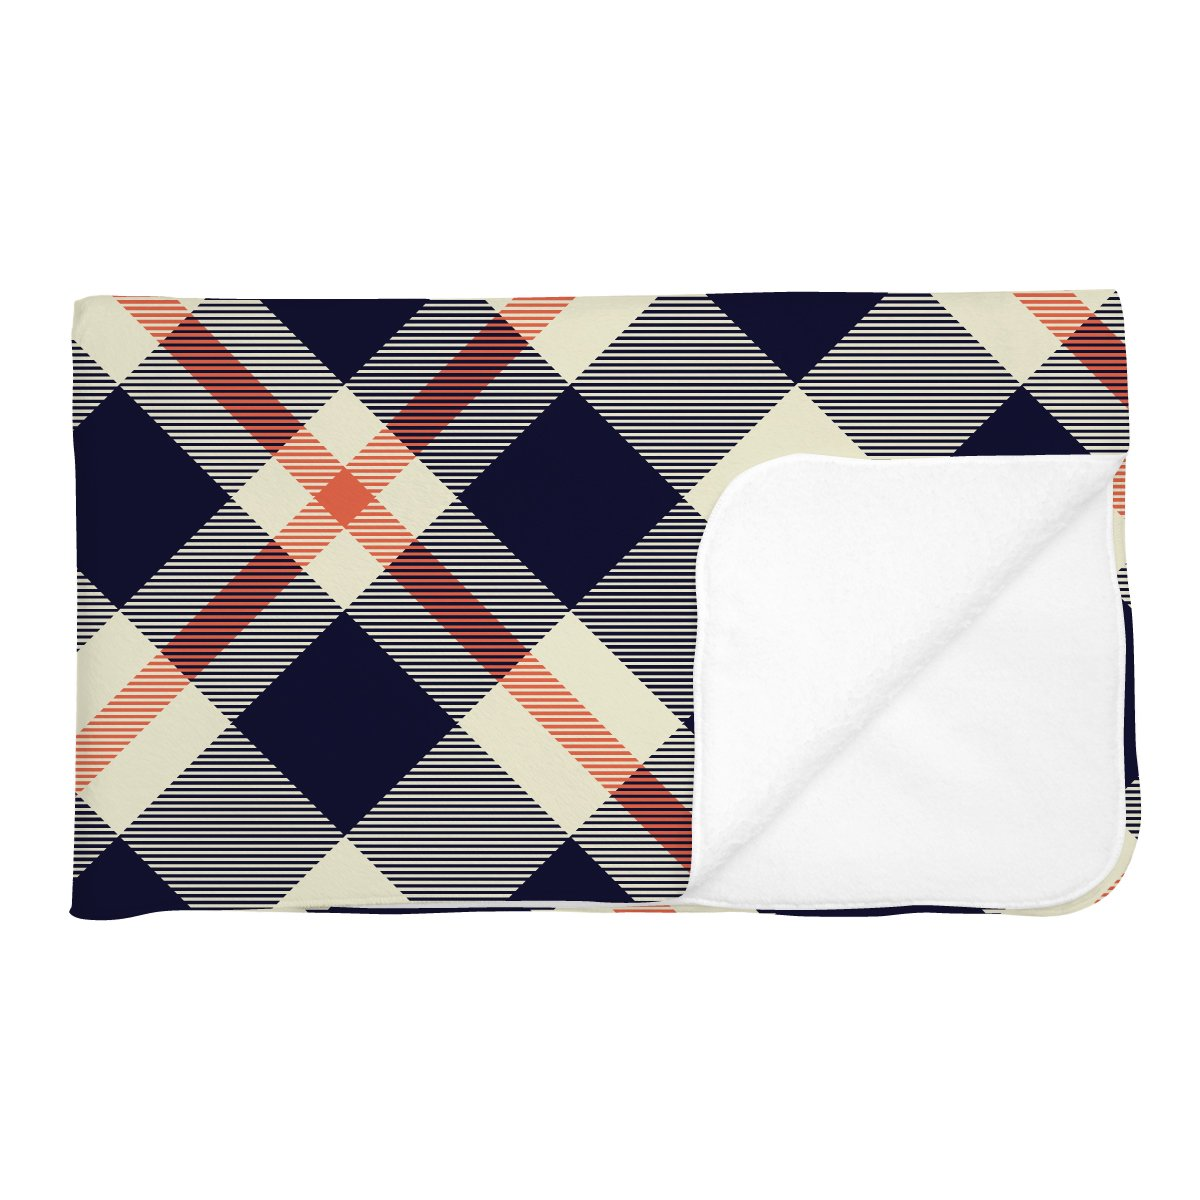 Michael's Preppy Plaid | Adult Size Blanket